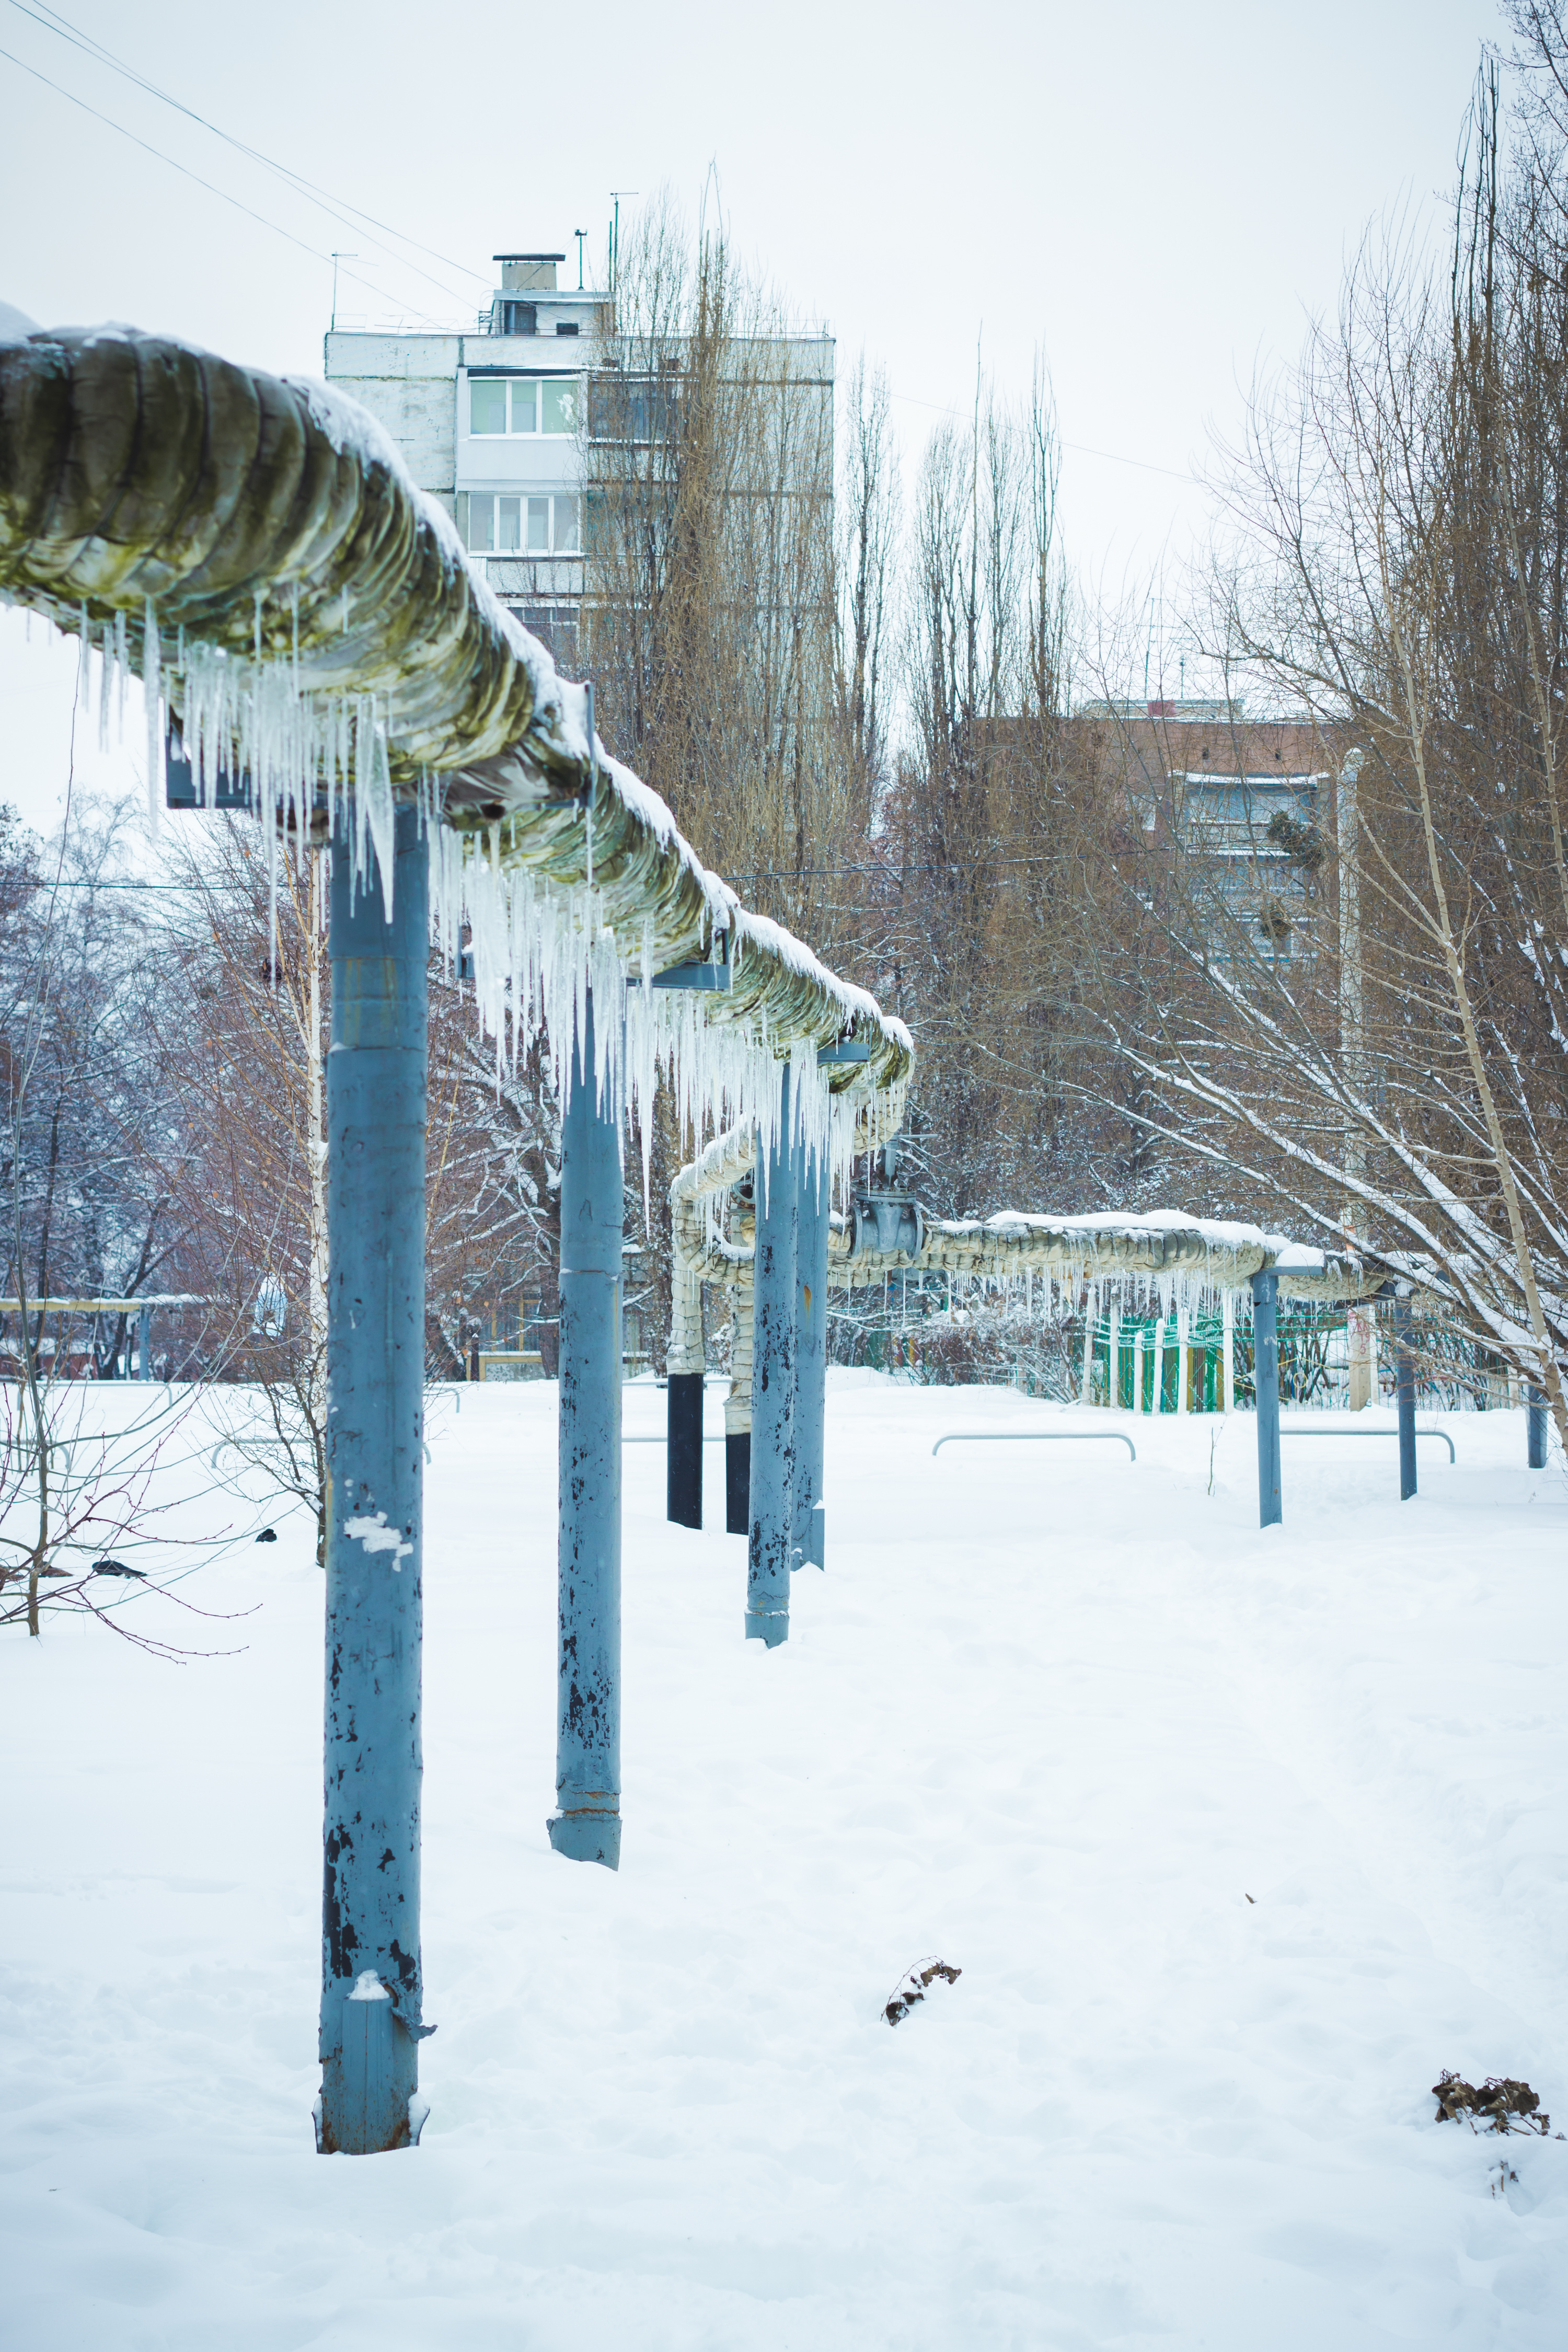 7 Key Steps for Business Owners to Take When Claiming Ice Storm Damage Under Their Commercial Insurance Policy